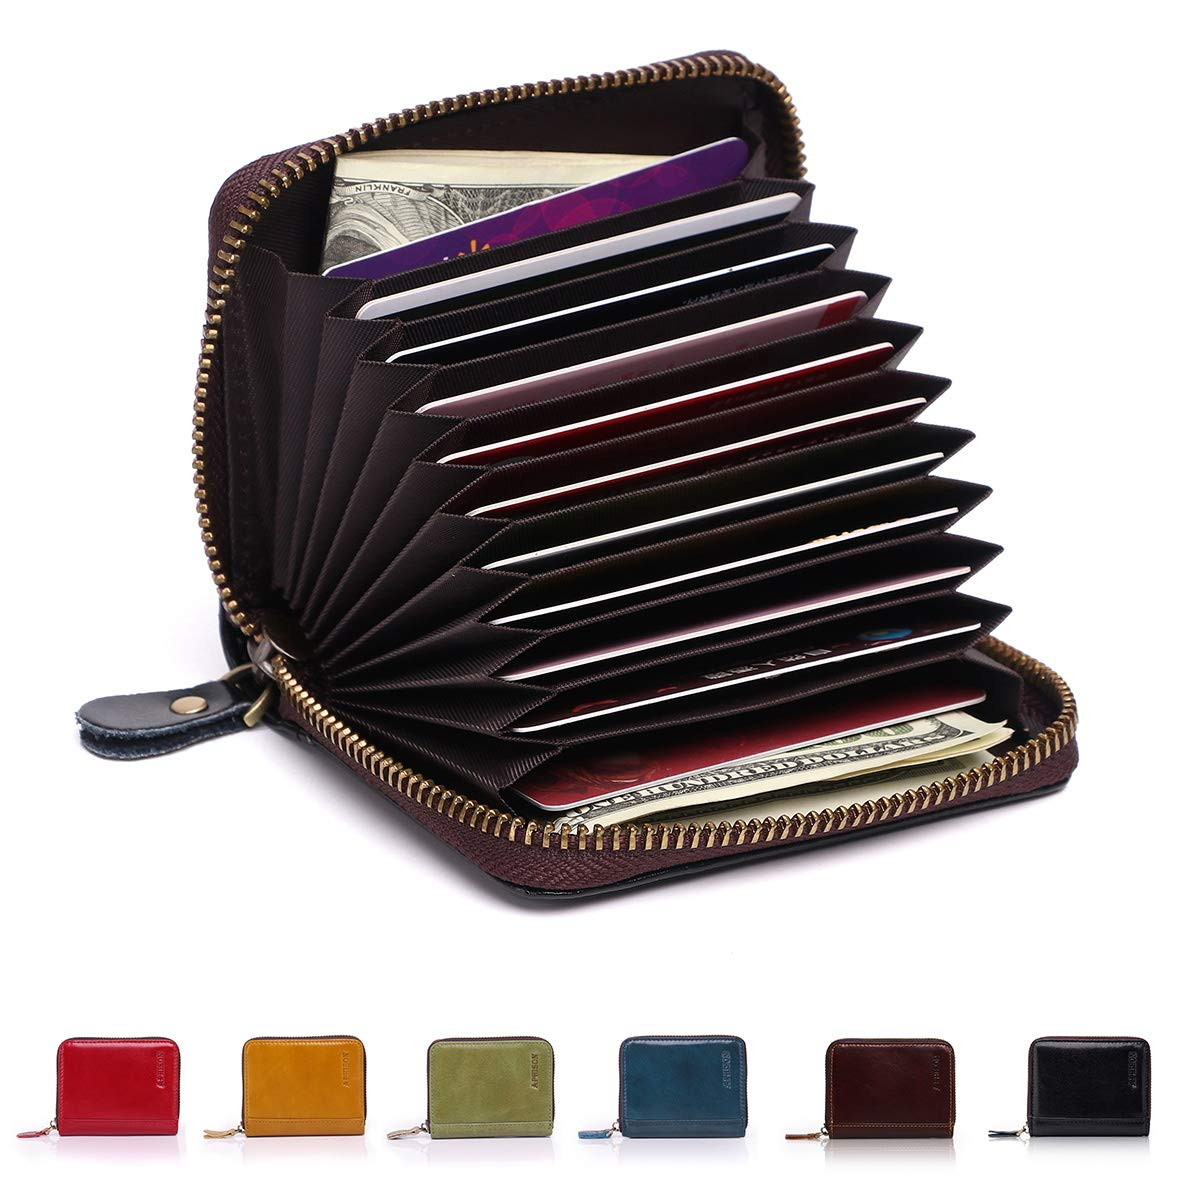 APHISON RFID Genuine Leather Credit Card Holder Wallet for Women Men Coin Purse Zipper Small Secure Card Case/Gift Box 8117